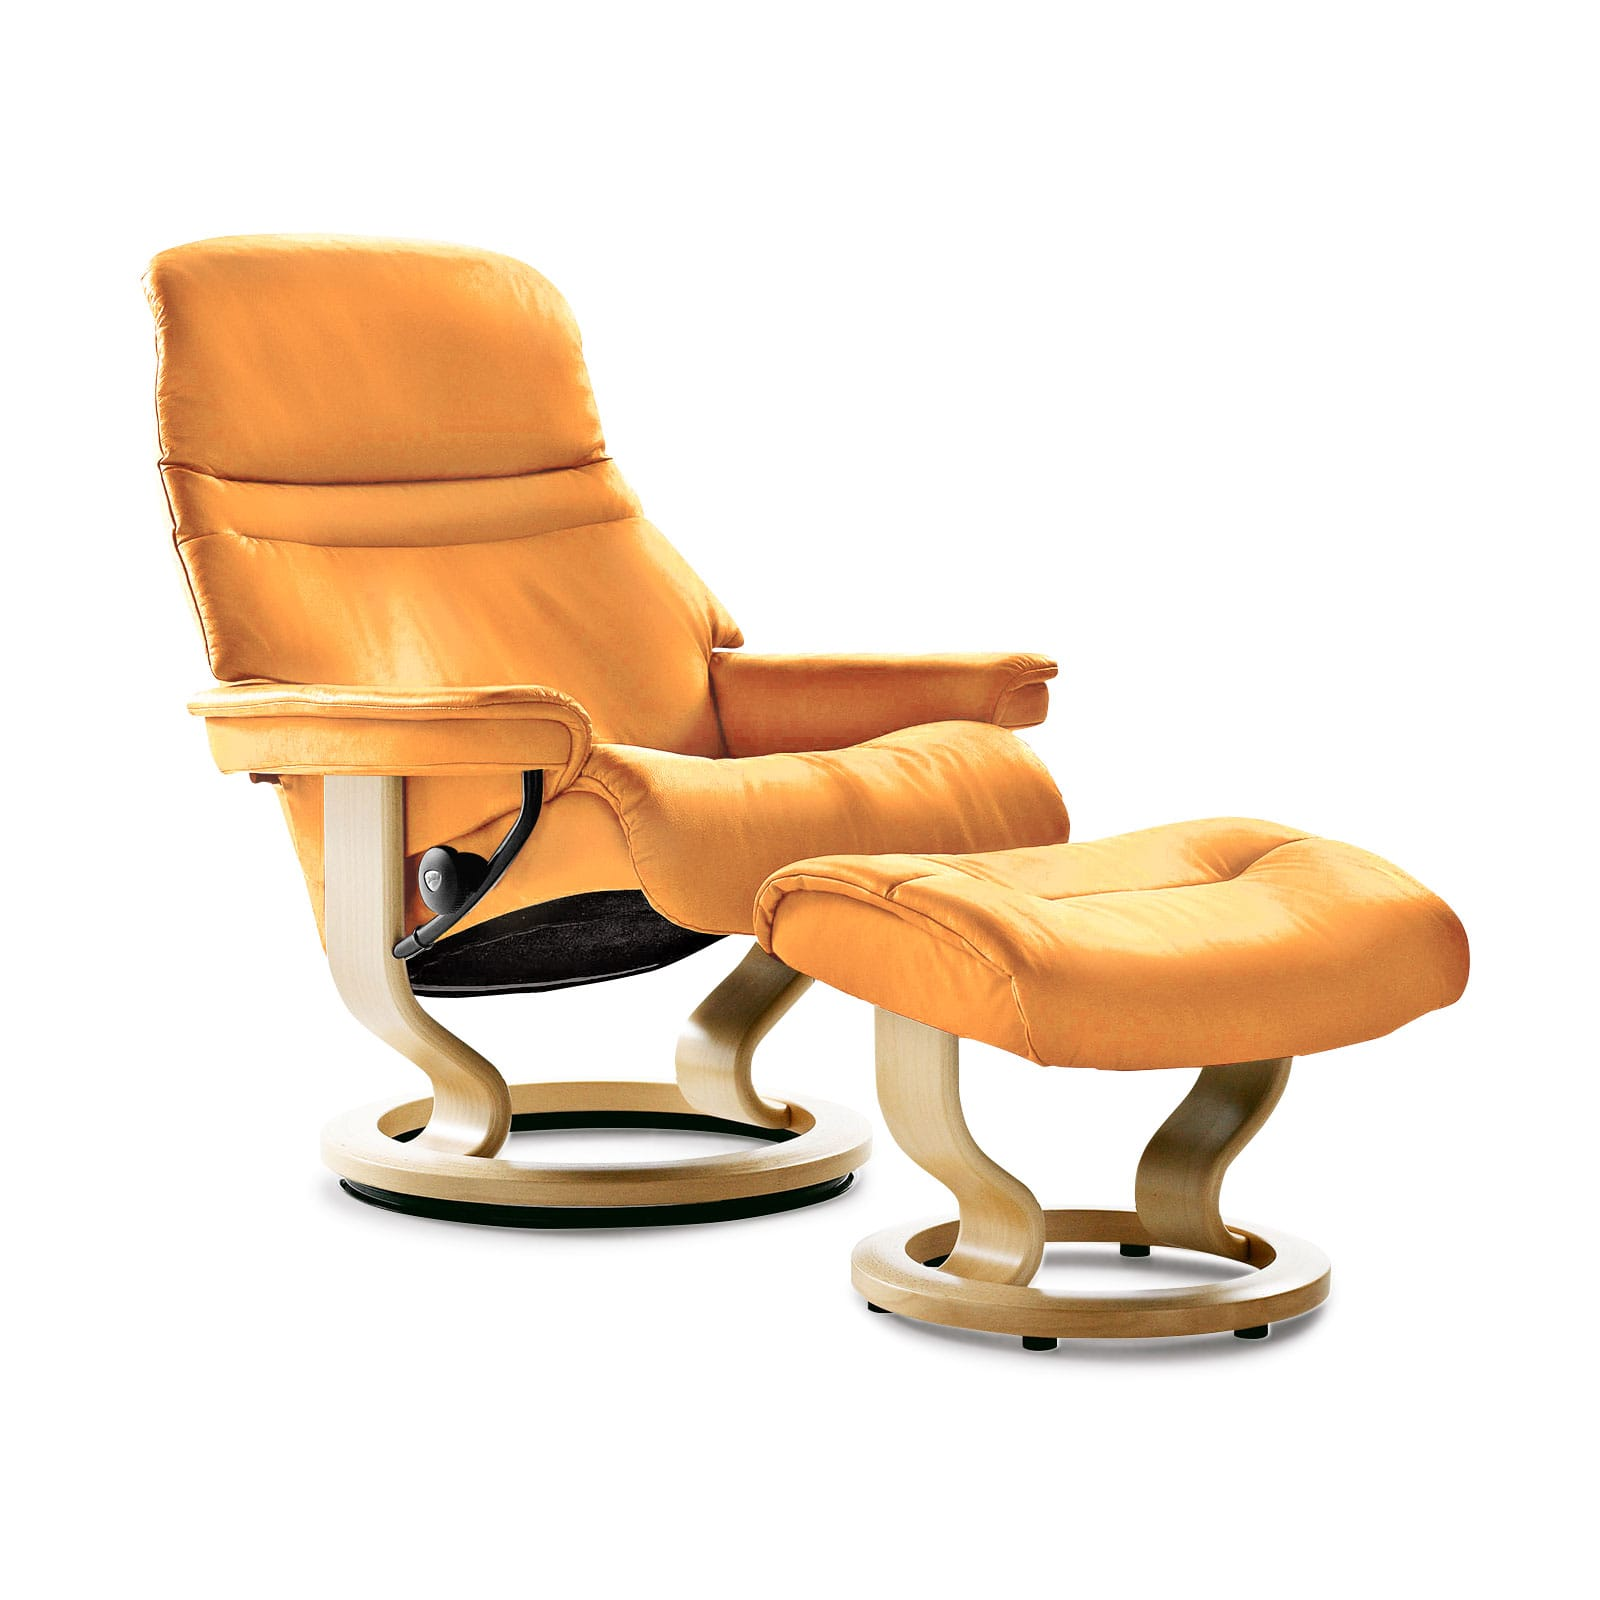 Stressless Sessel Sunrise M Paloma Clementine Mit Hocker